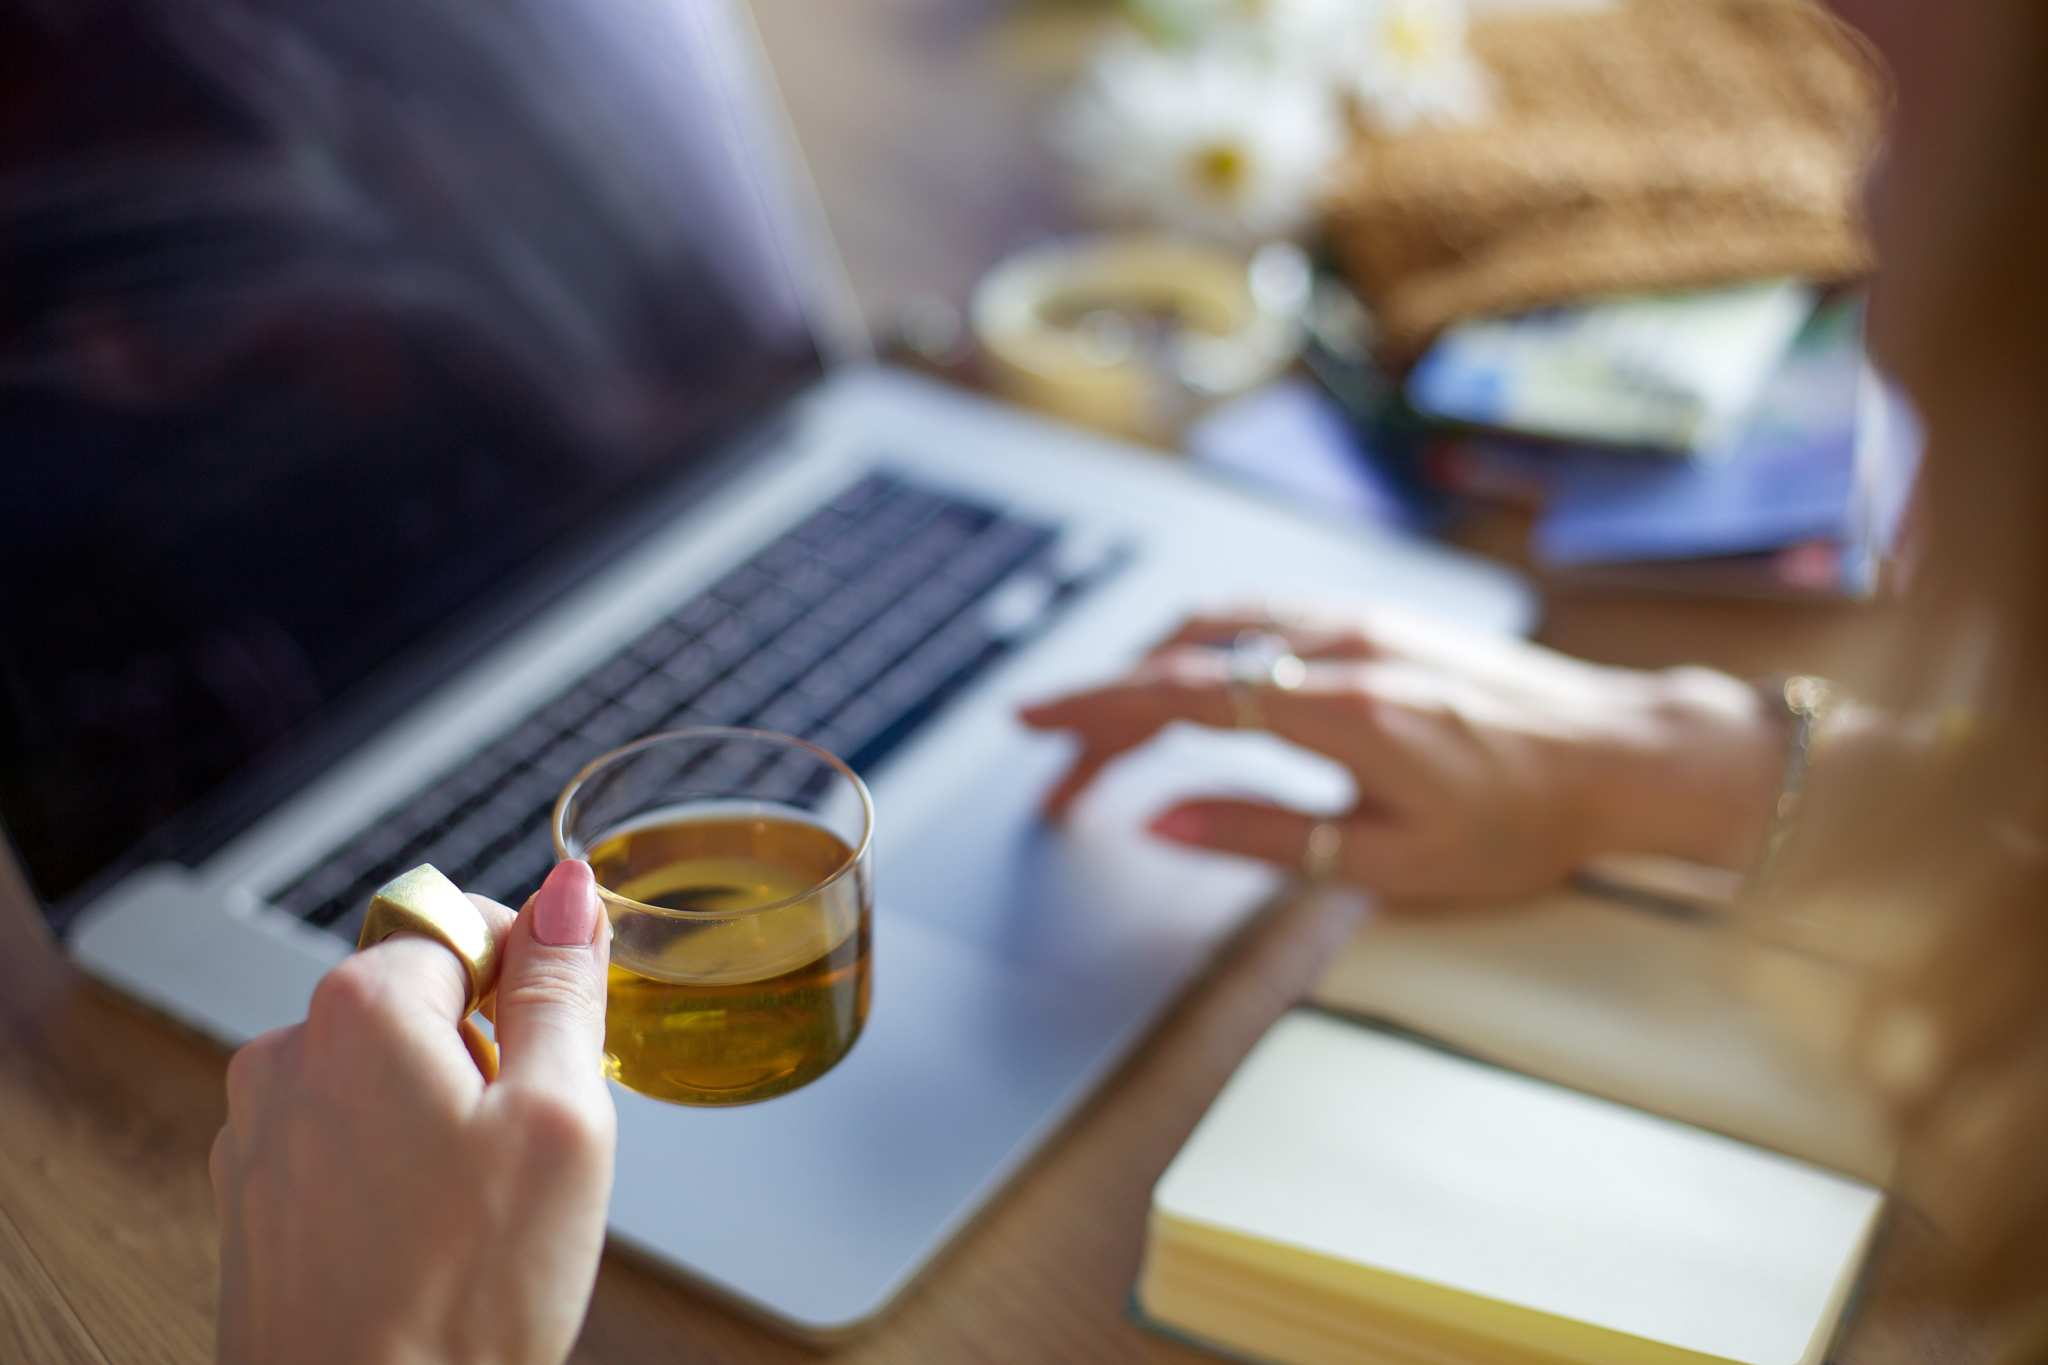 A woman drinks a cup of tea as she shops online with a laptop. A notebook is open in front of the keyboard. Ministry of Hemp partnered with our favorite brands to bring you great Black Friday CBD deals, so you can restock, try new products, and share CBD with your loved ones.